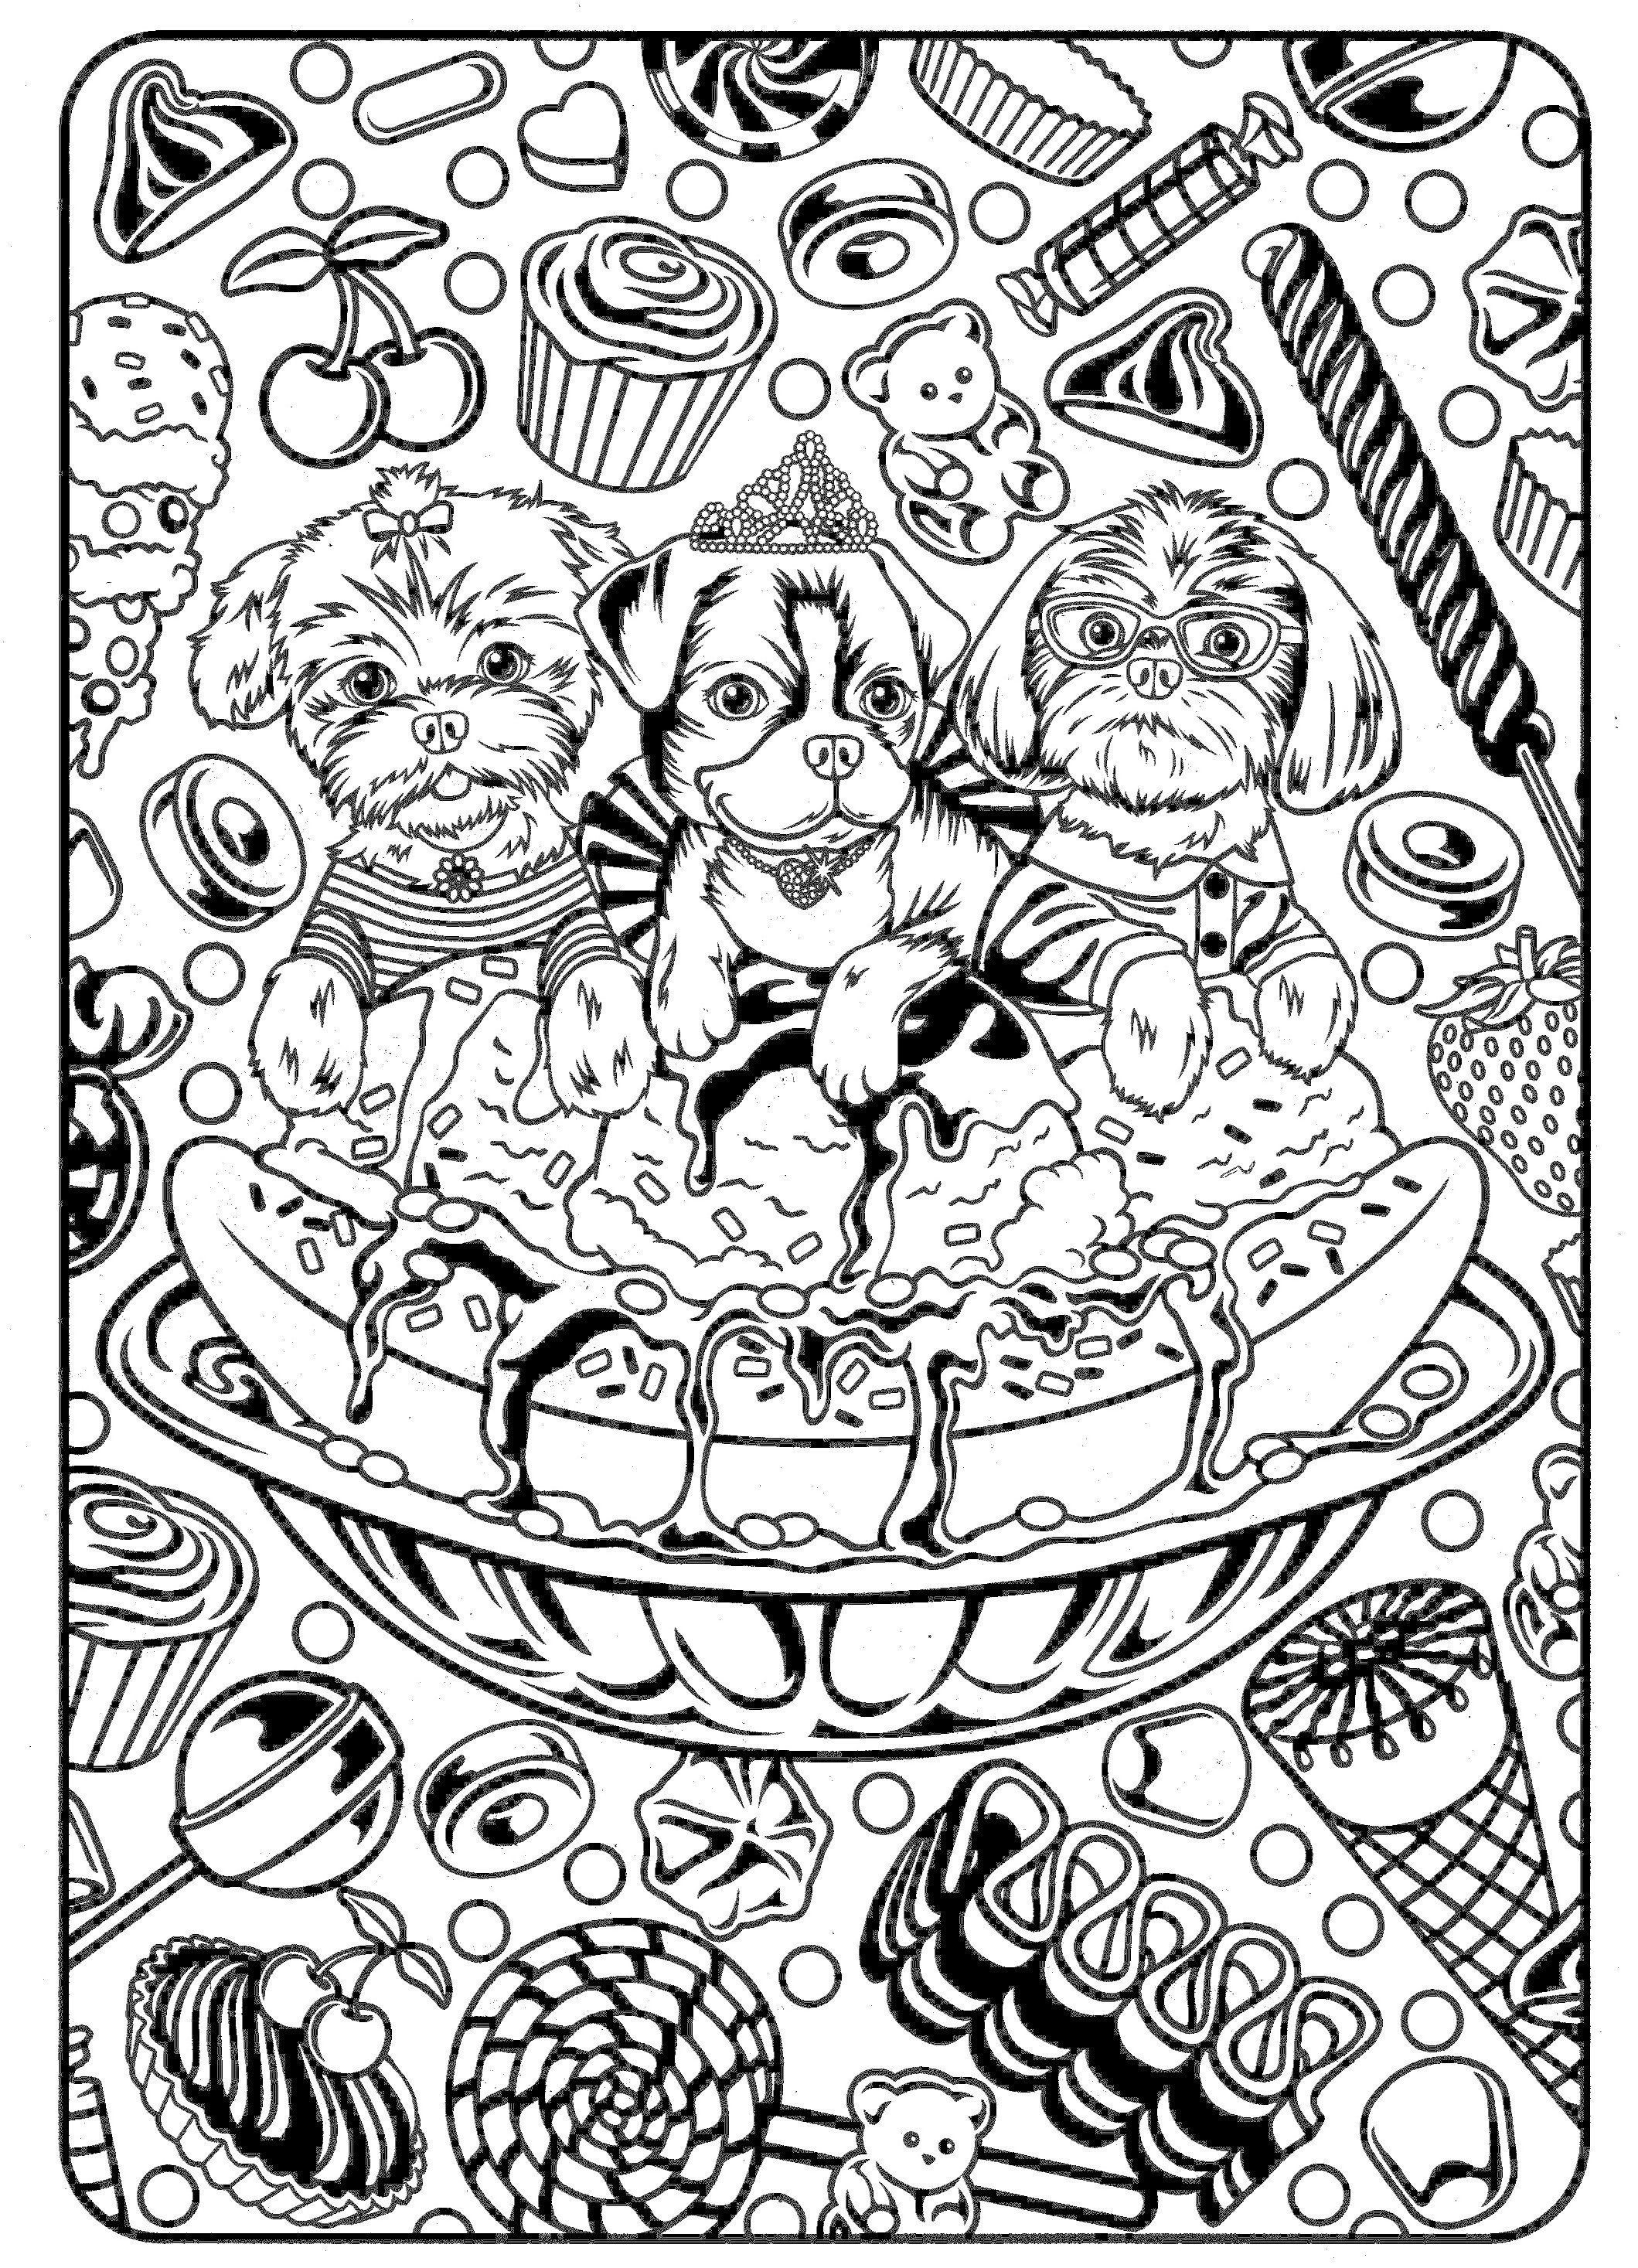 Crayola Free Coloring Pages Inspirational Fresh Hair Coloring Pages Free Cool Coloring Pages Pokemon Coloring Pages Bird Coloring Pages [ 2934 x 2119 Pixel ]